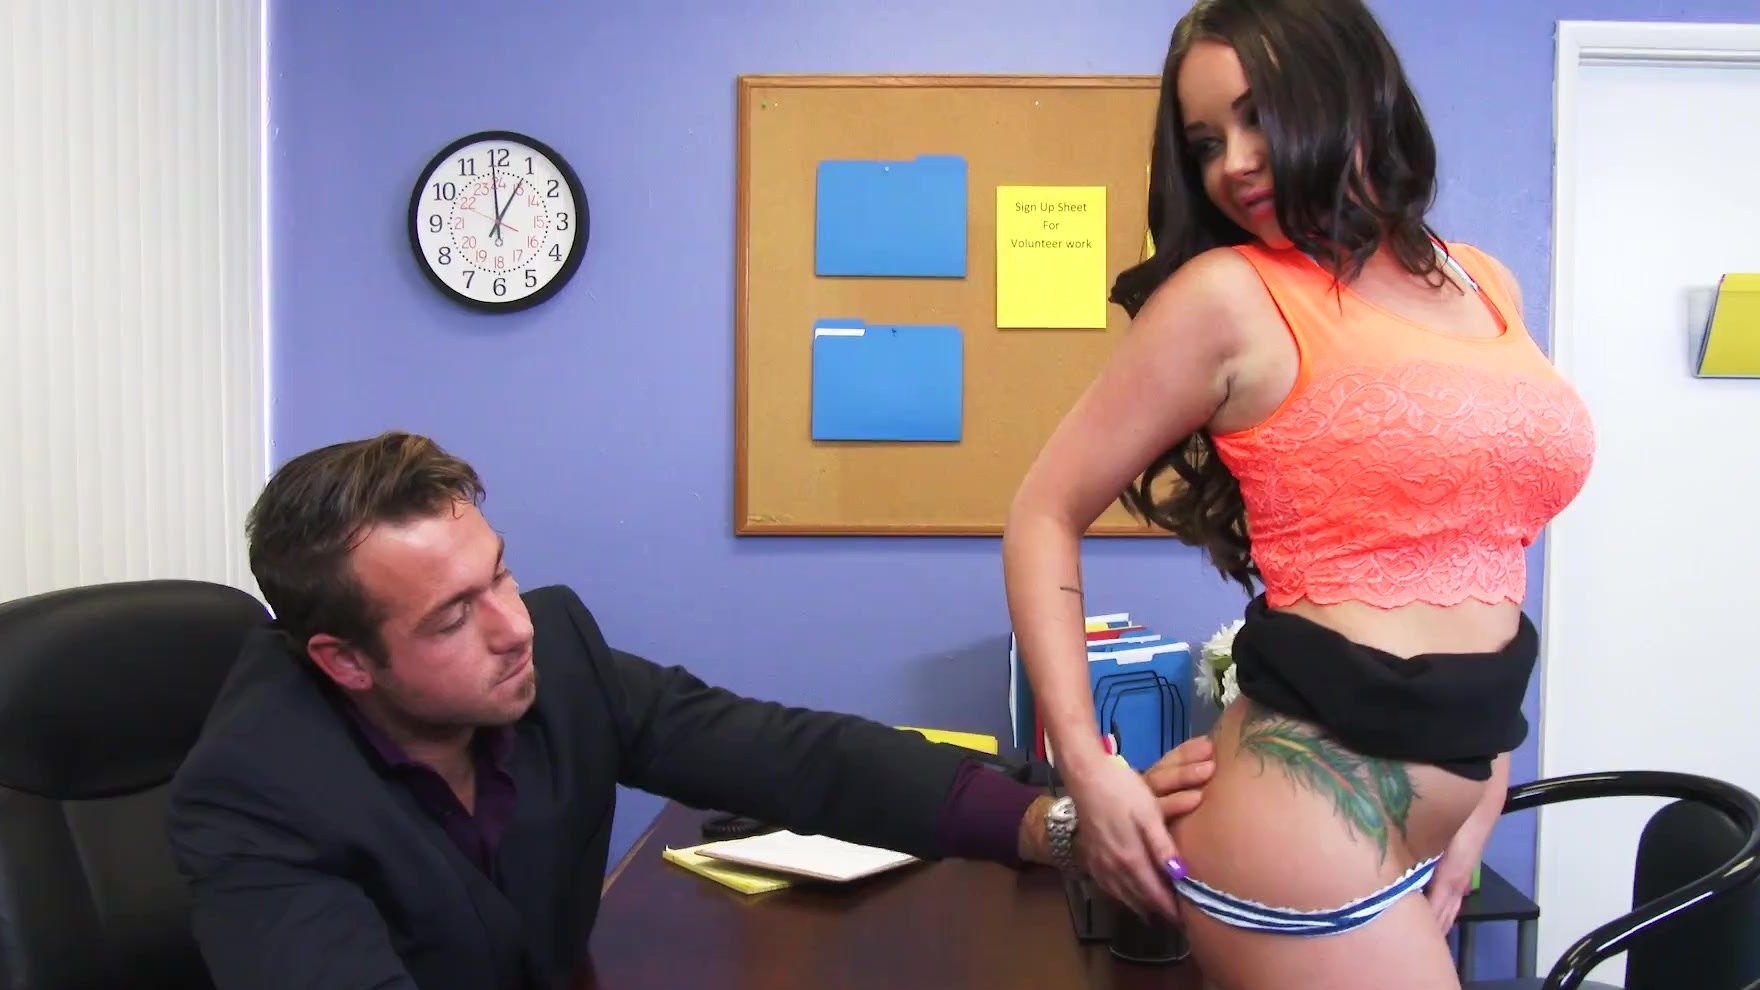 enjoy sergio valen penetrates the ass only requirements are